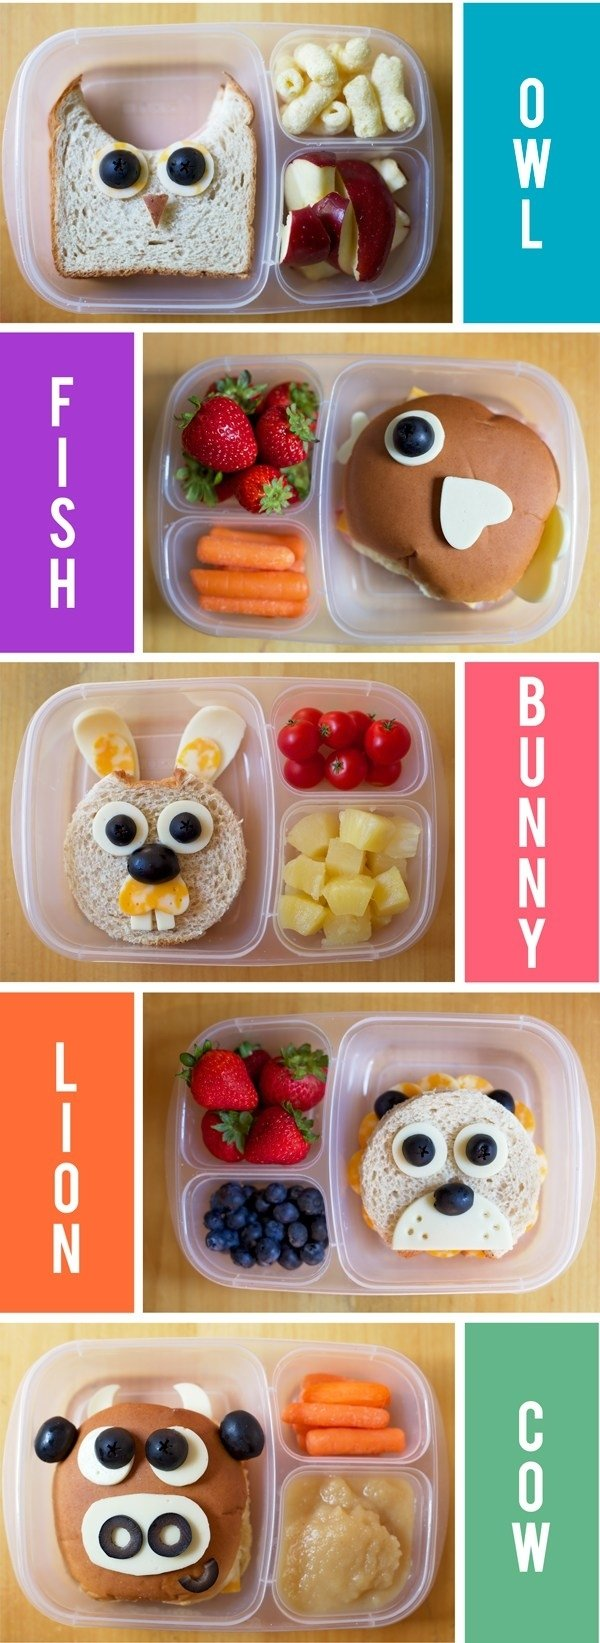 10 Stunning School Lunch Ideas For Kids the best school lunch ideas for kids that are fun and easy 11 2020